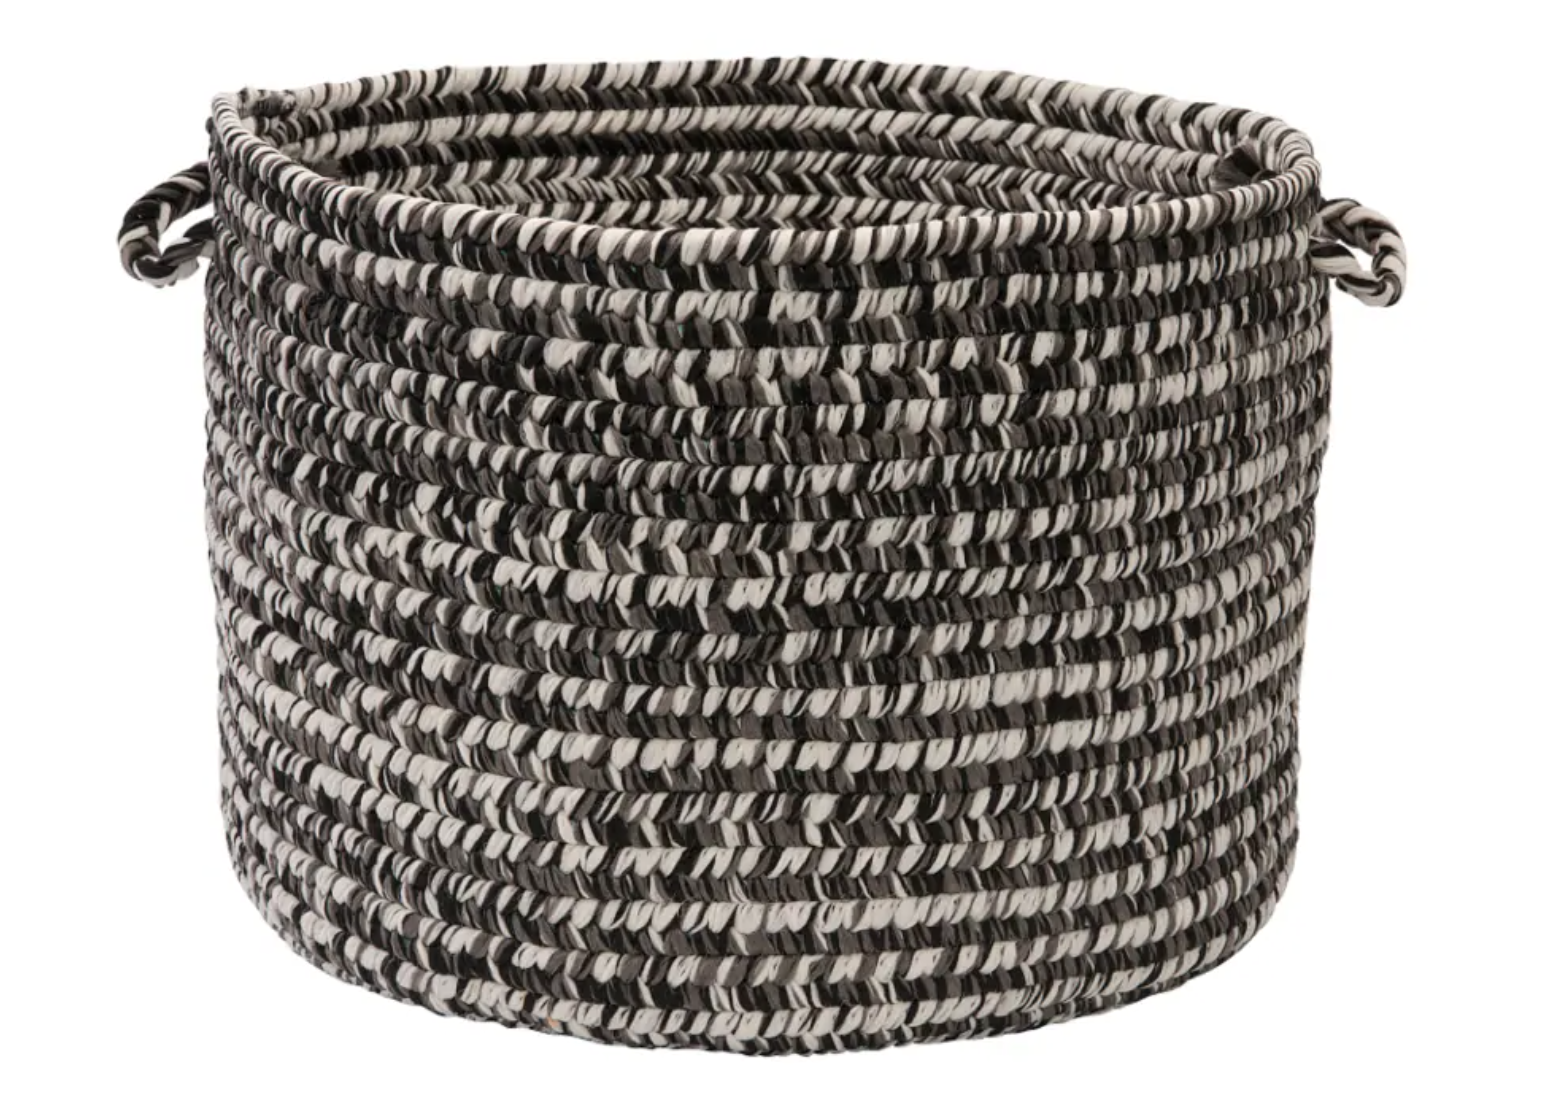 a black, white, and gray woven basket